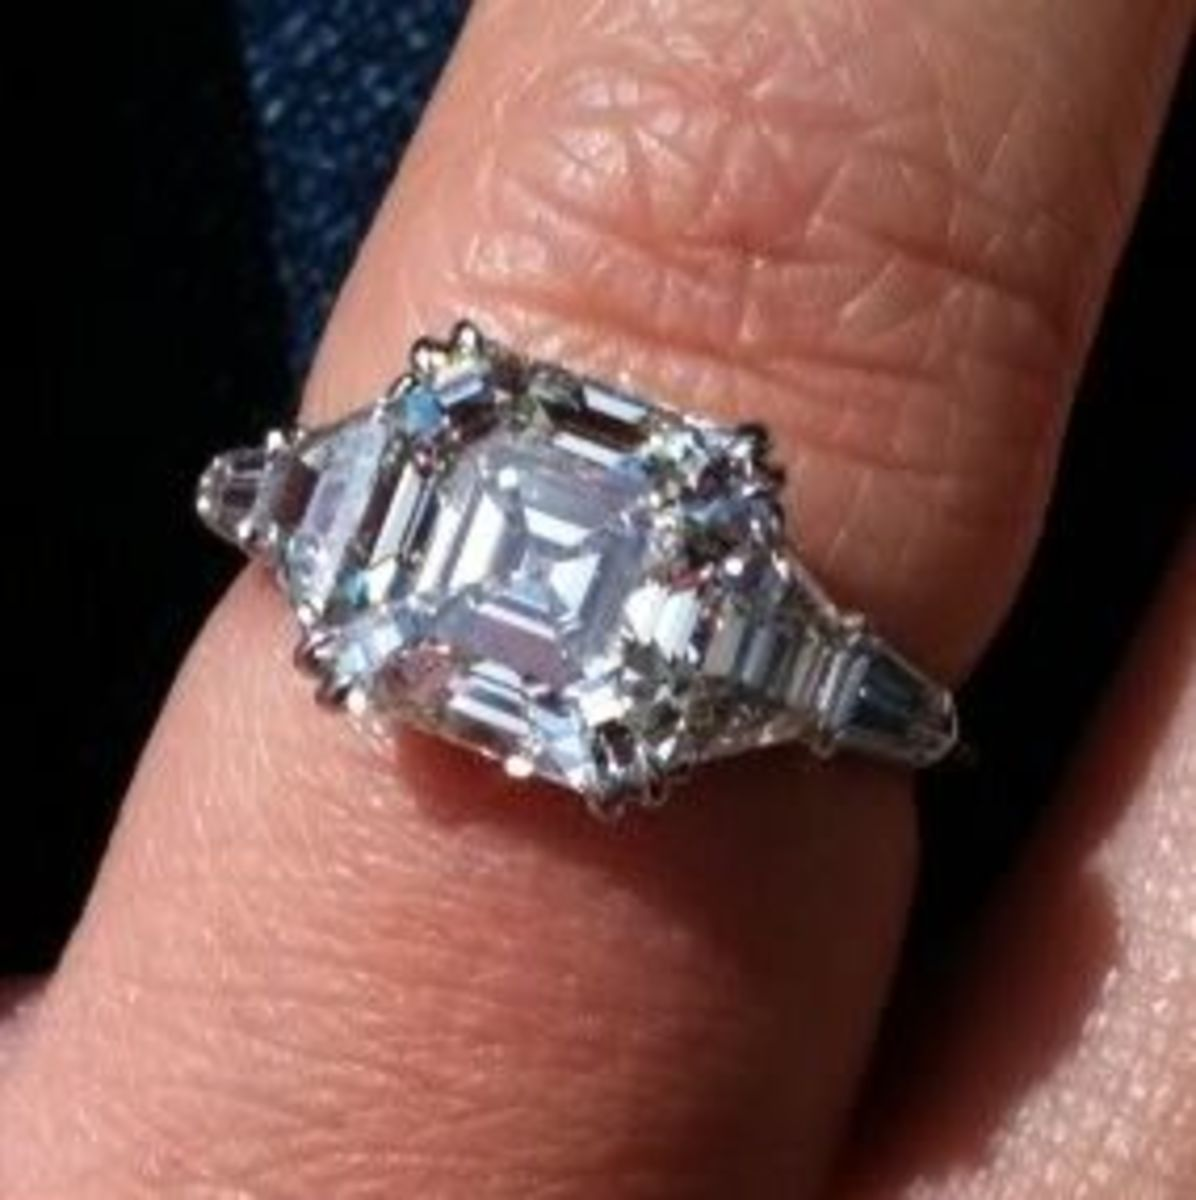 Asscher cut diamonds look great in K L M color